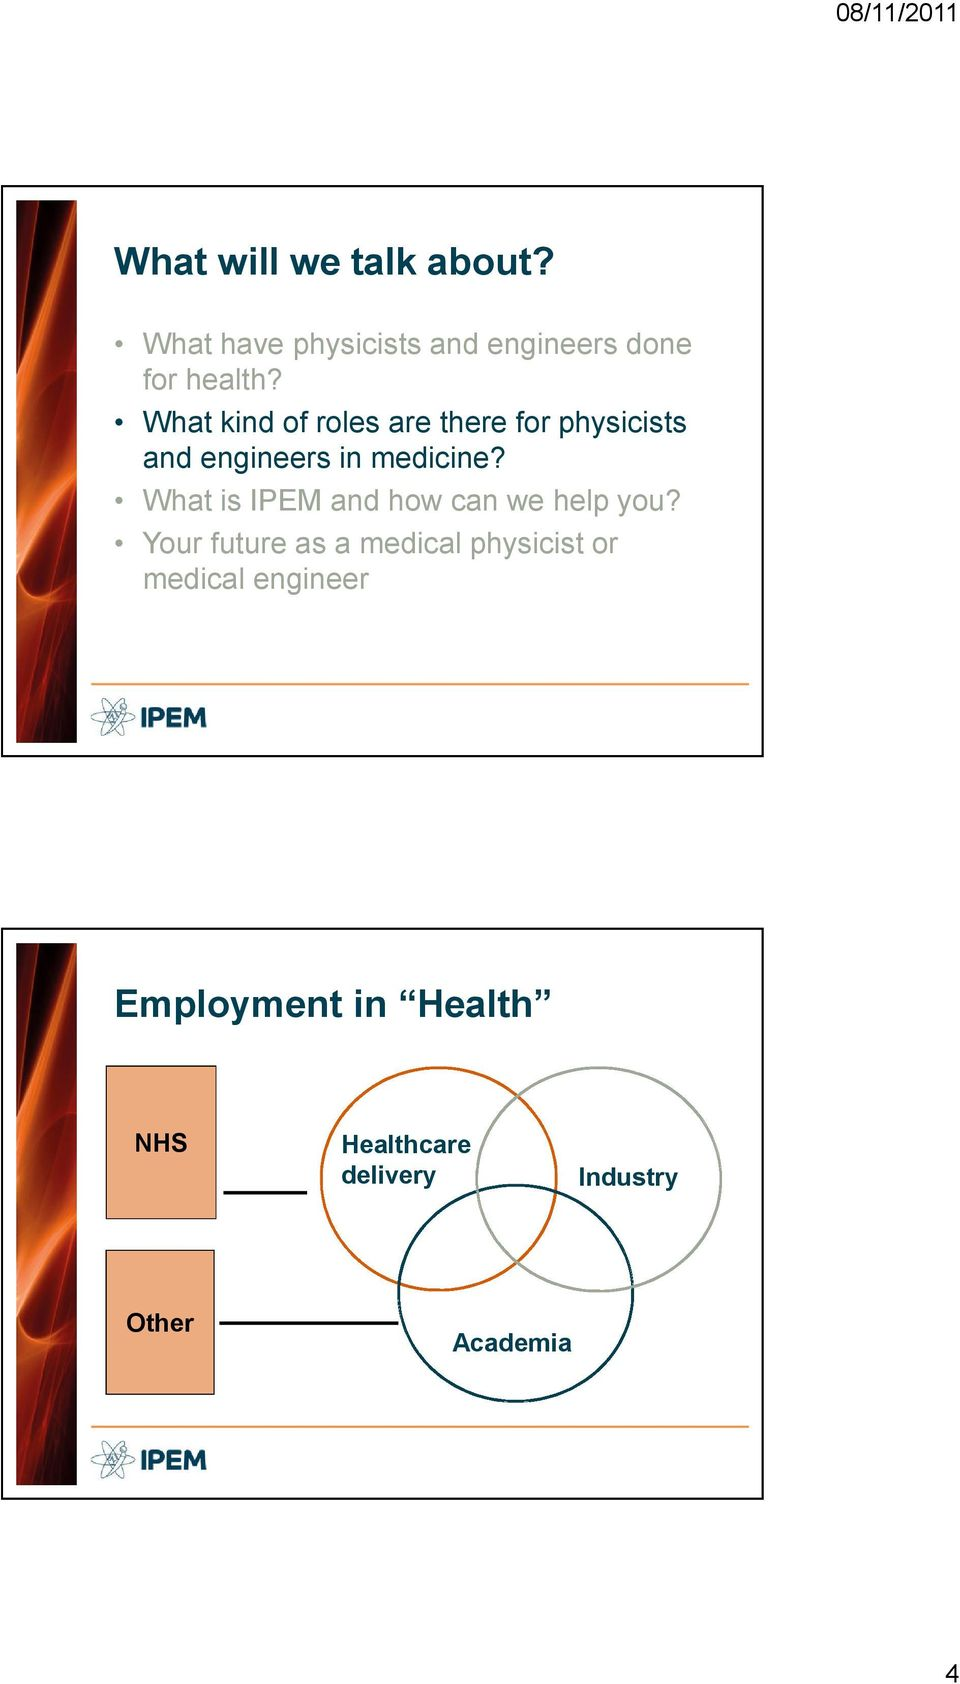 What is IPEM and how can we help you?